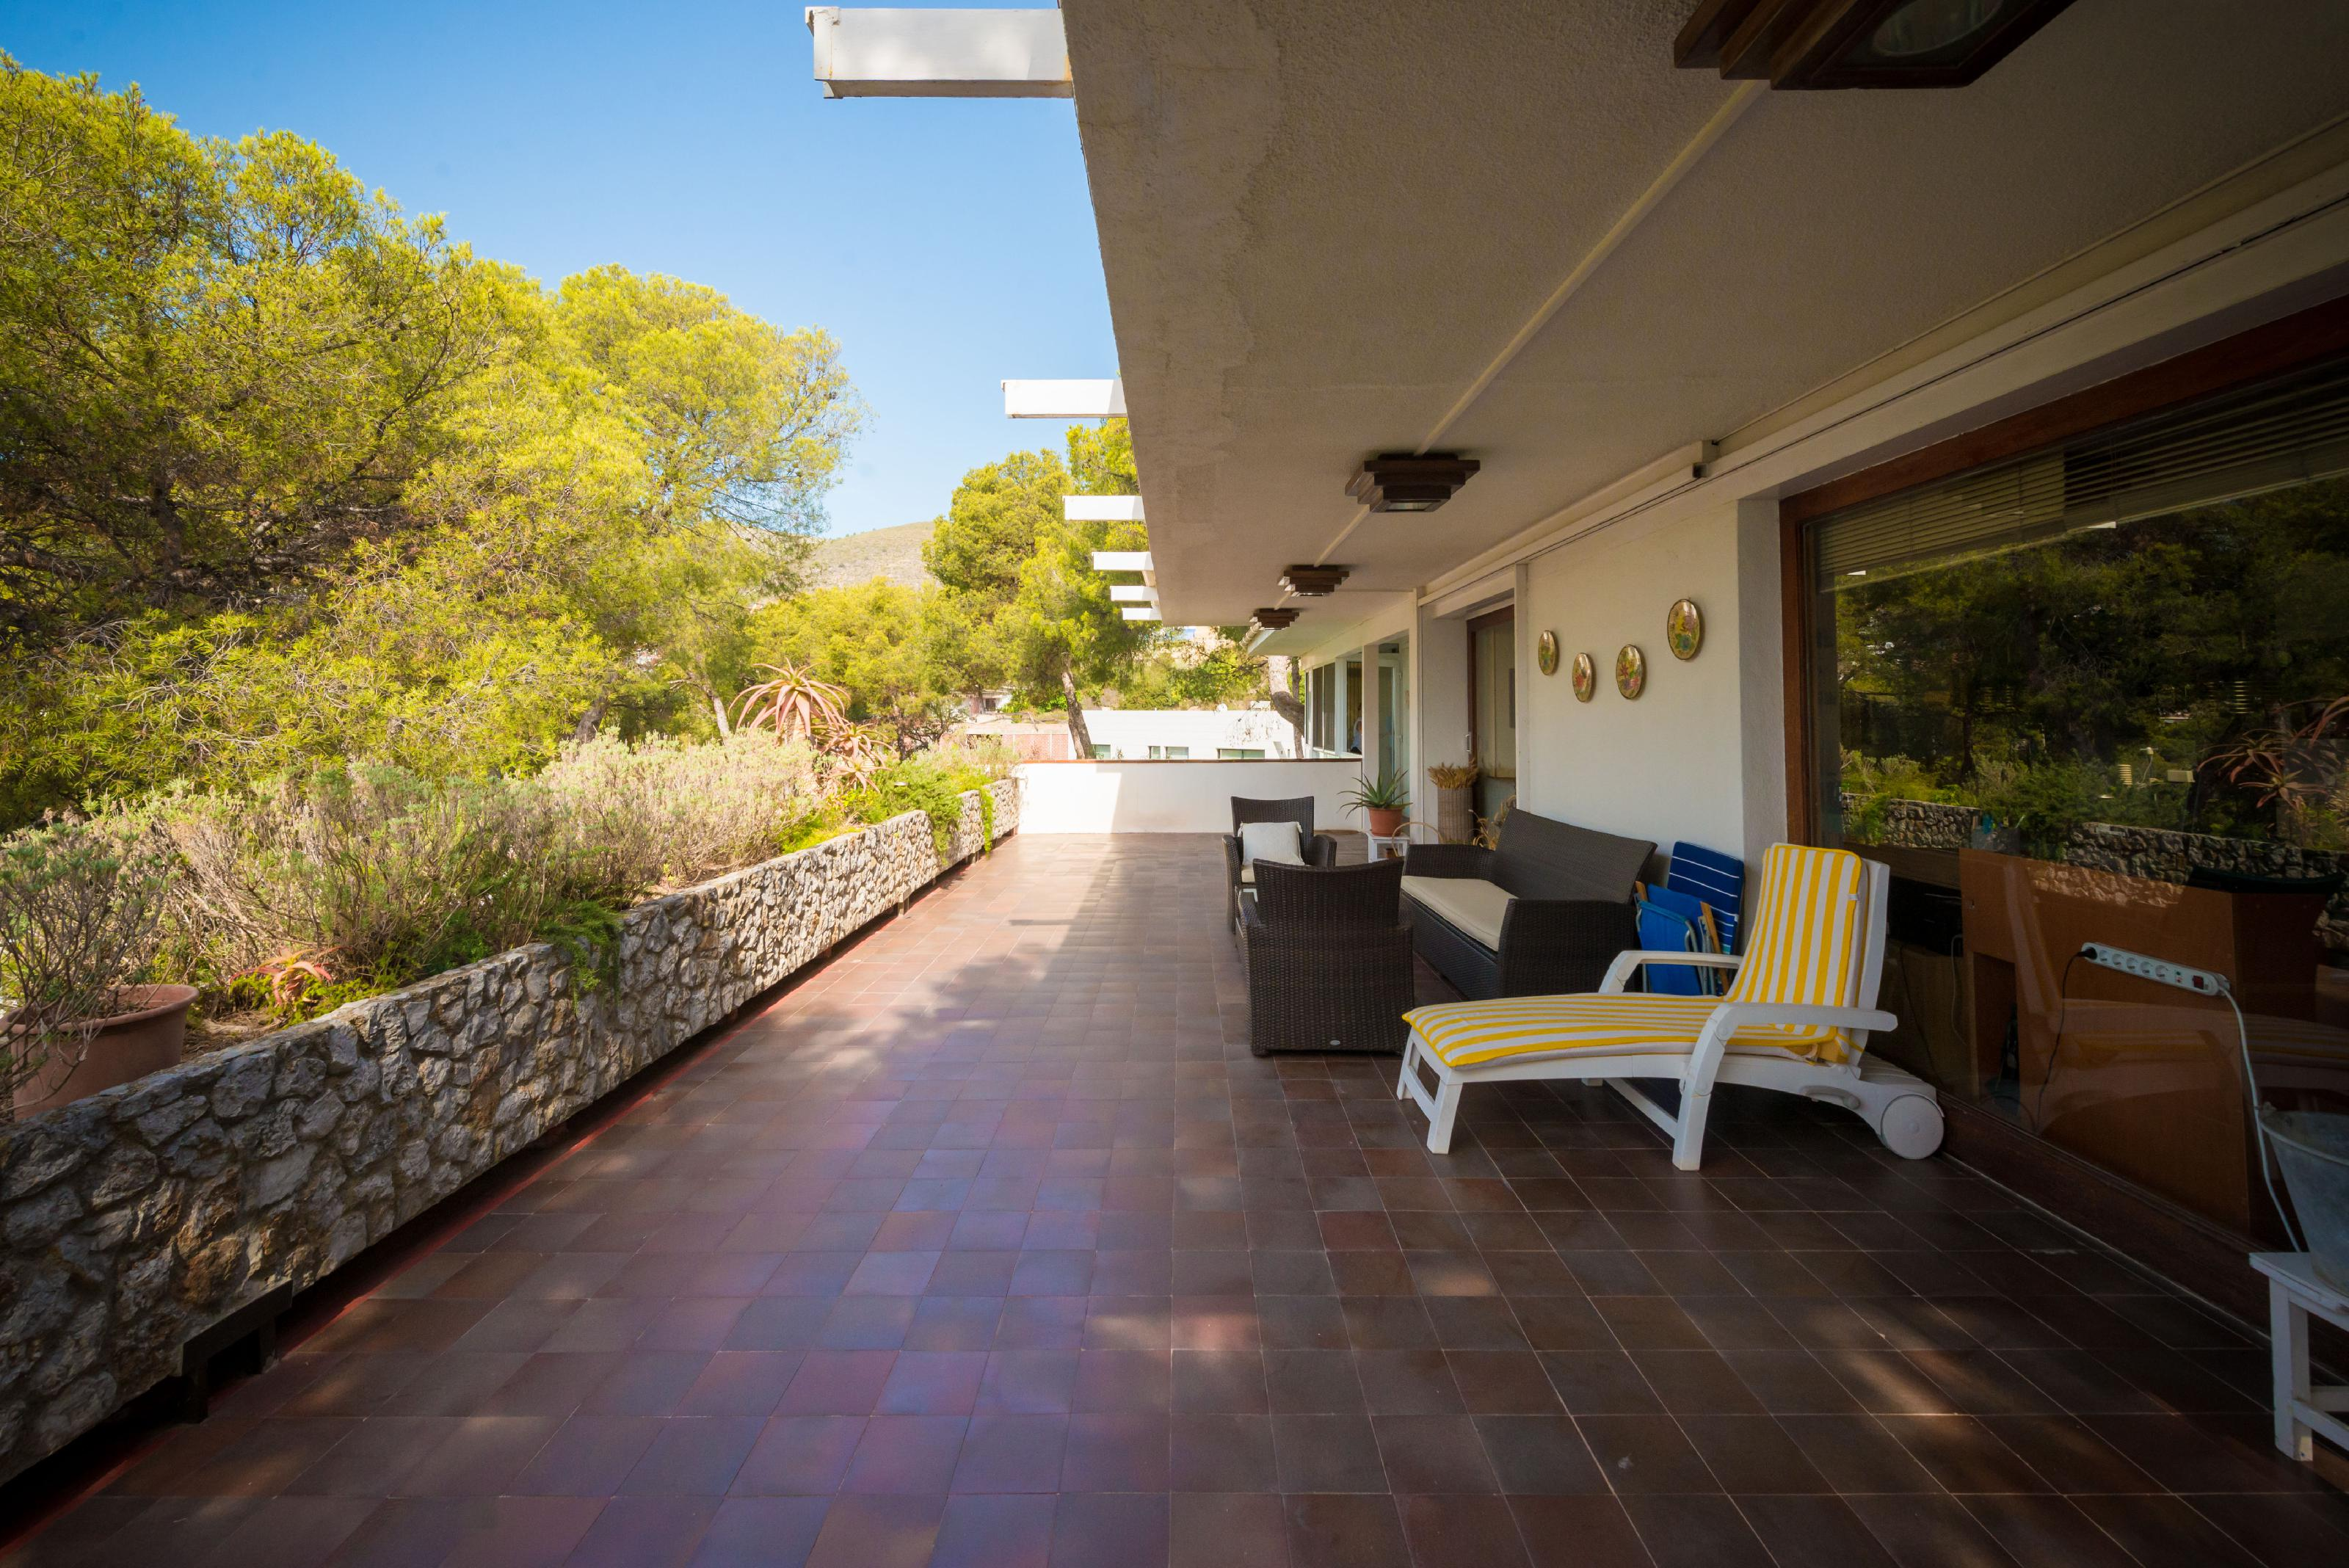 253501 Detached House for sale in Bellamar 10